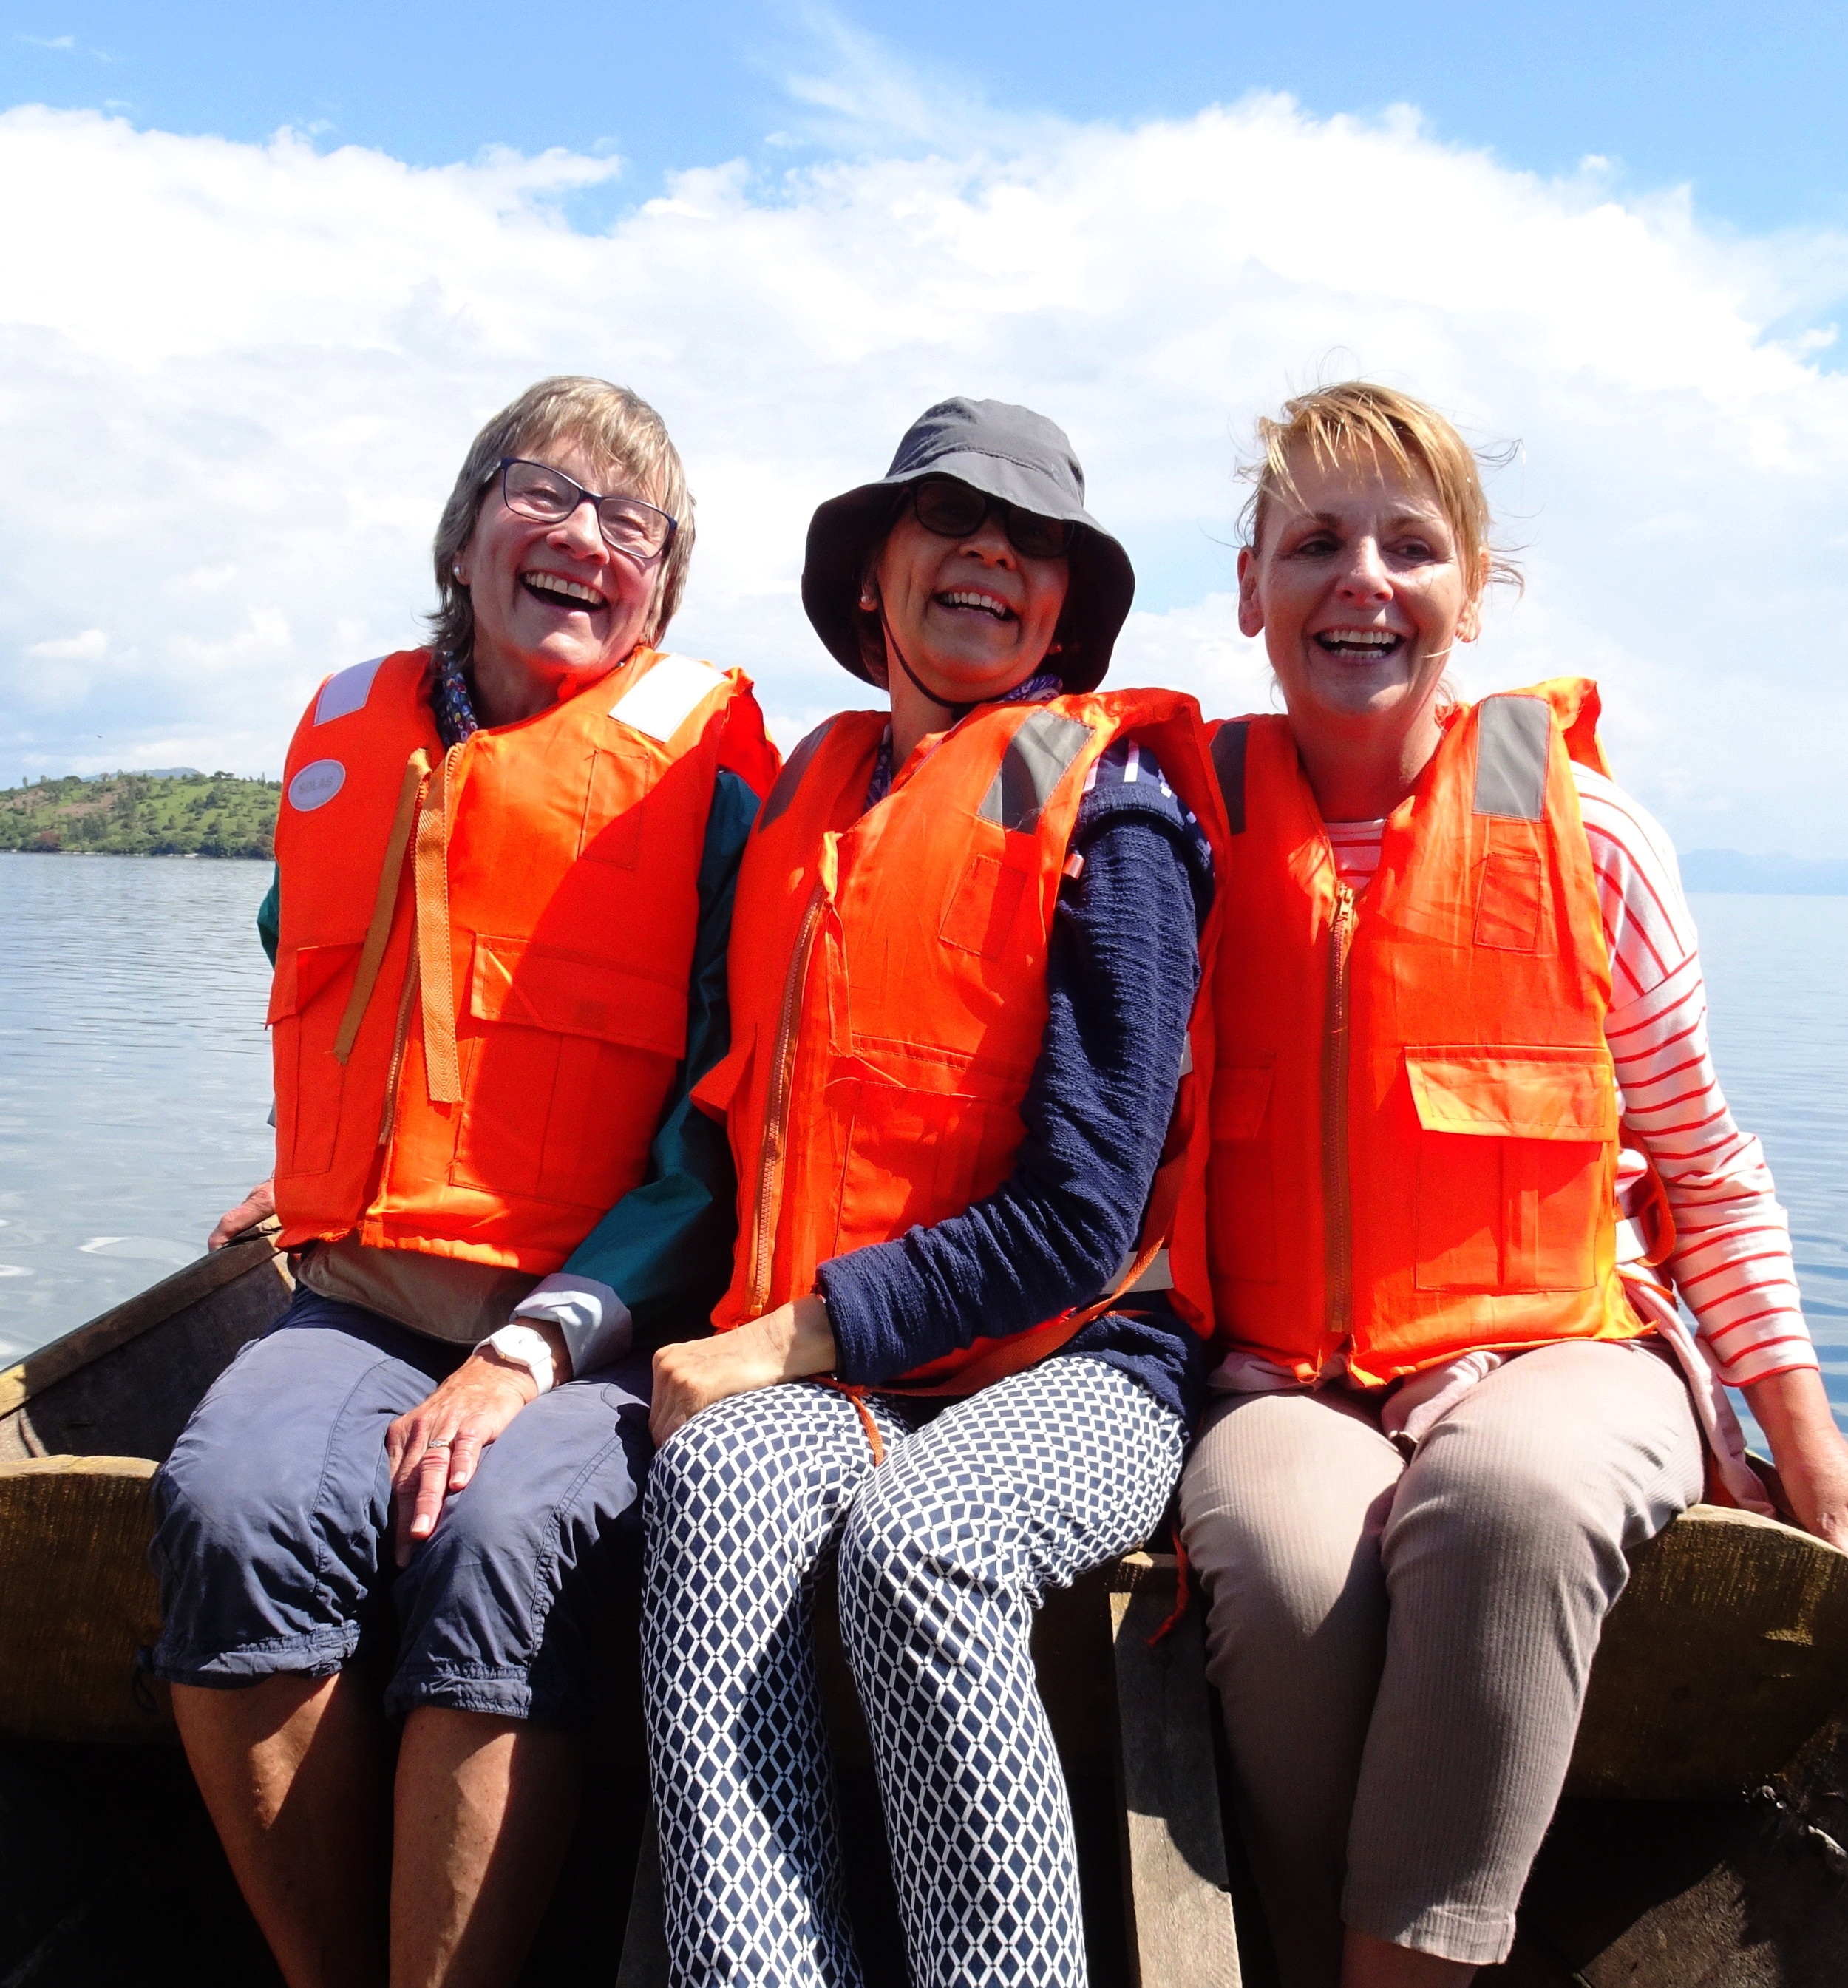 When Chris returned home, Margo was joined by Janice and Jane, ex VSO Ghana volunteers, for a further two weeks. They came not only to discover Rwanda, but to use their experience and skills to support the project.